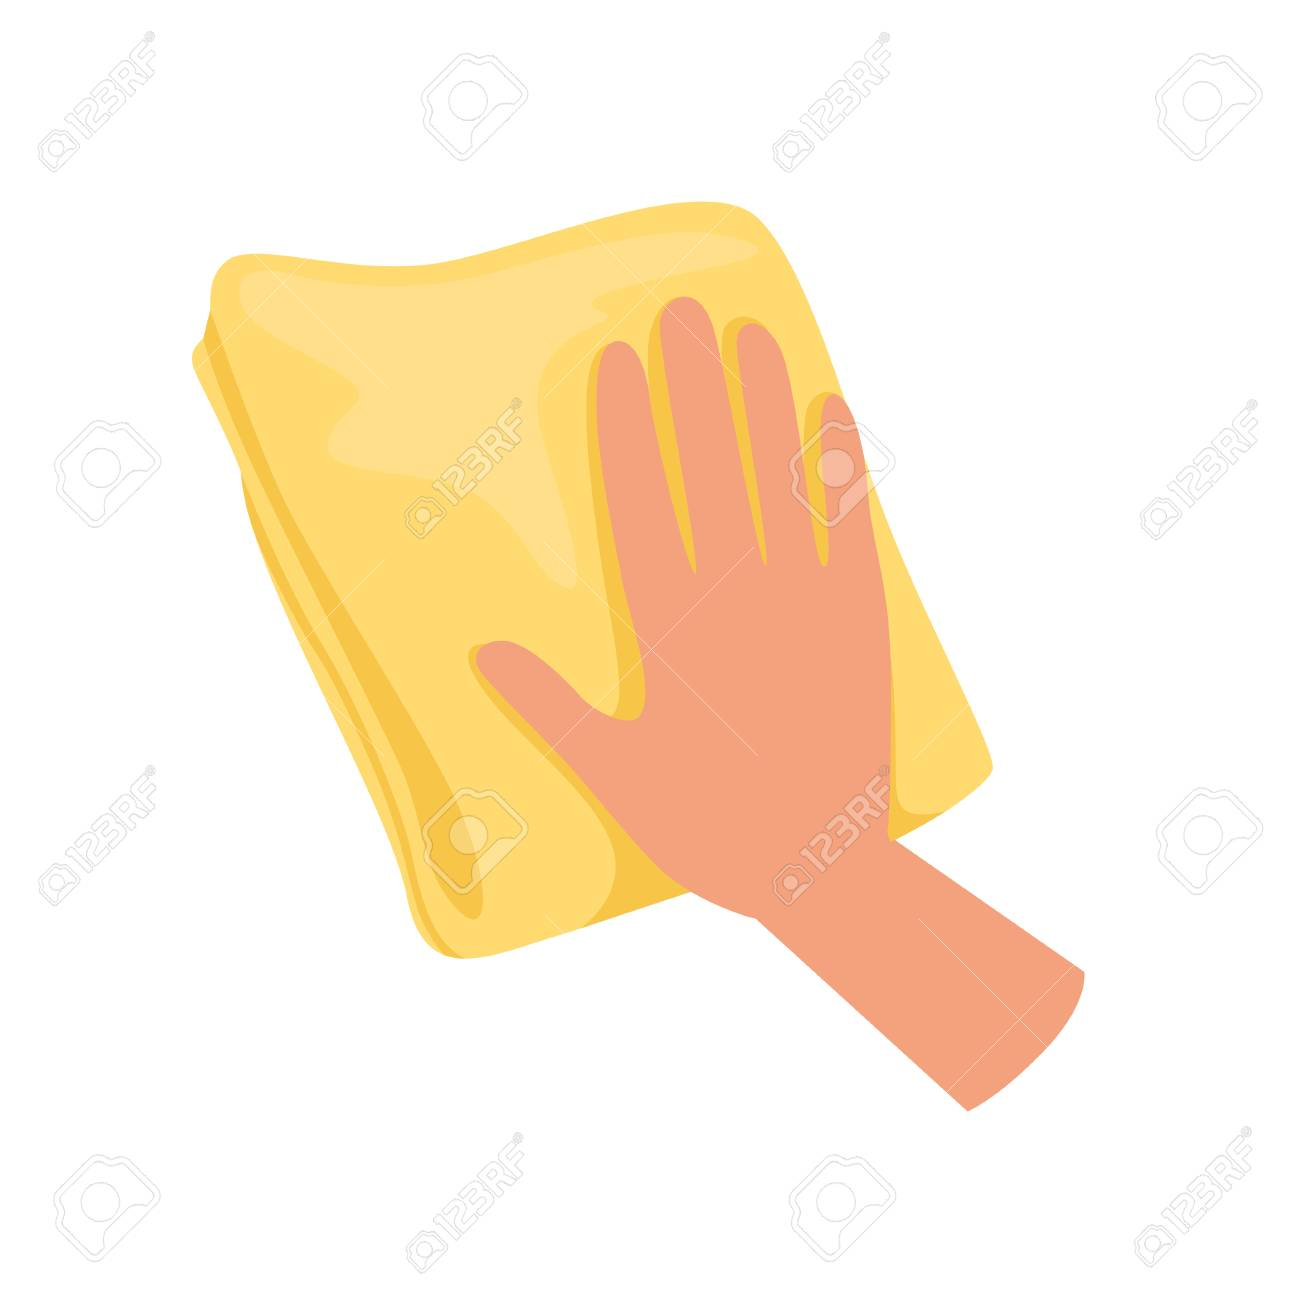 Hand holding yellow rag, human hand with tool for cleaning, housework concept vector Illustration isolated on a white background. - 99561114